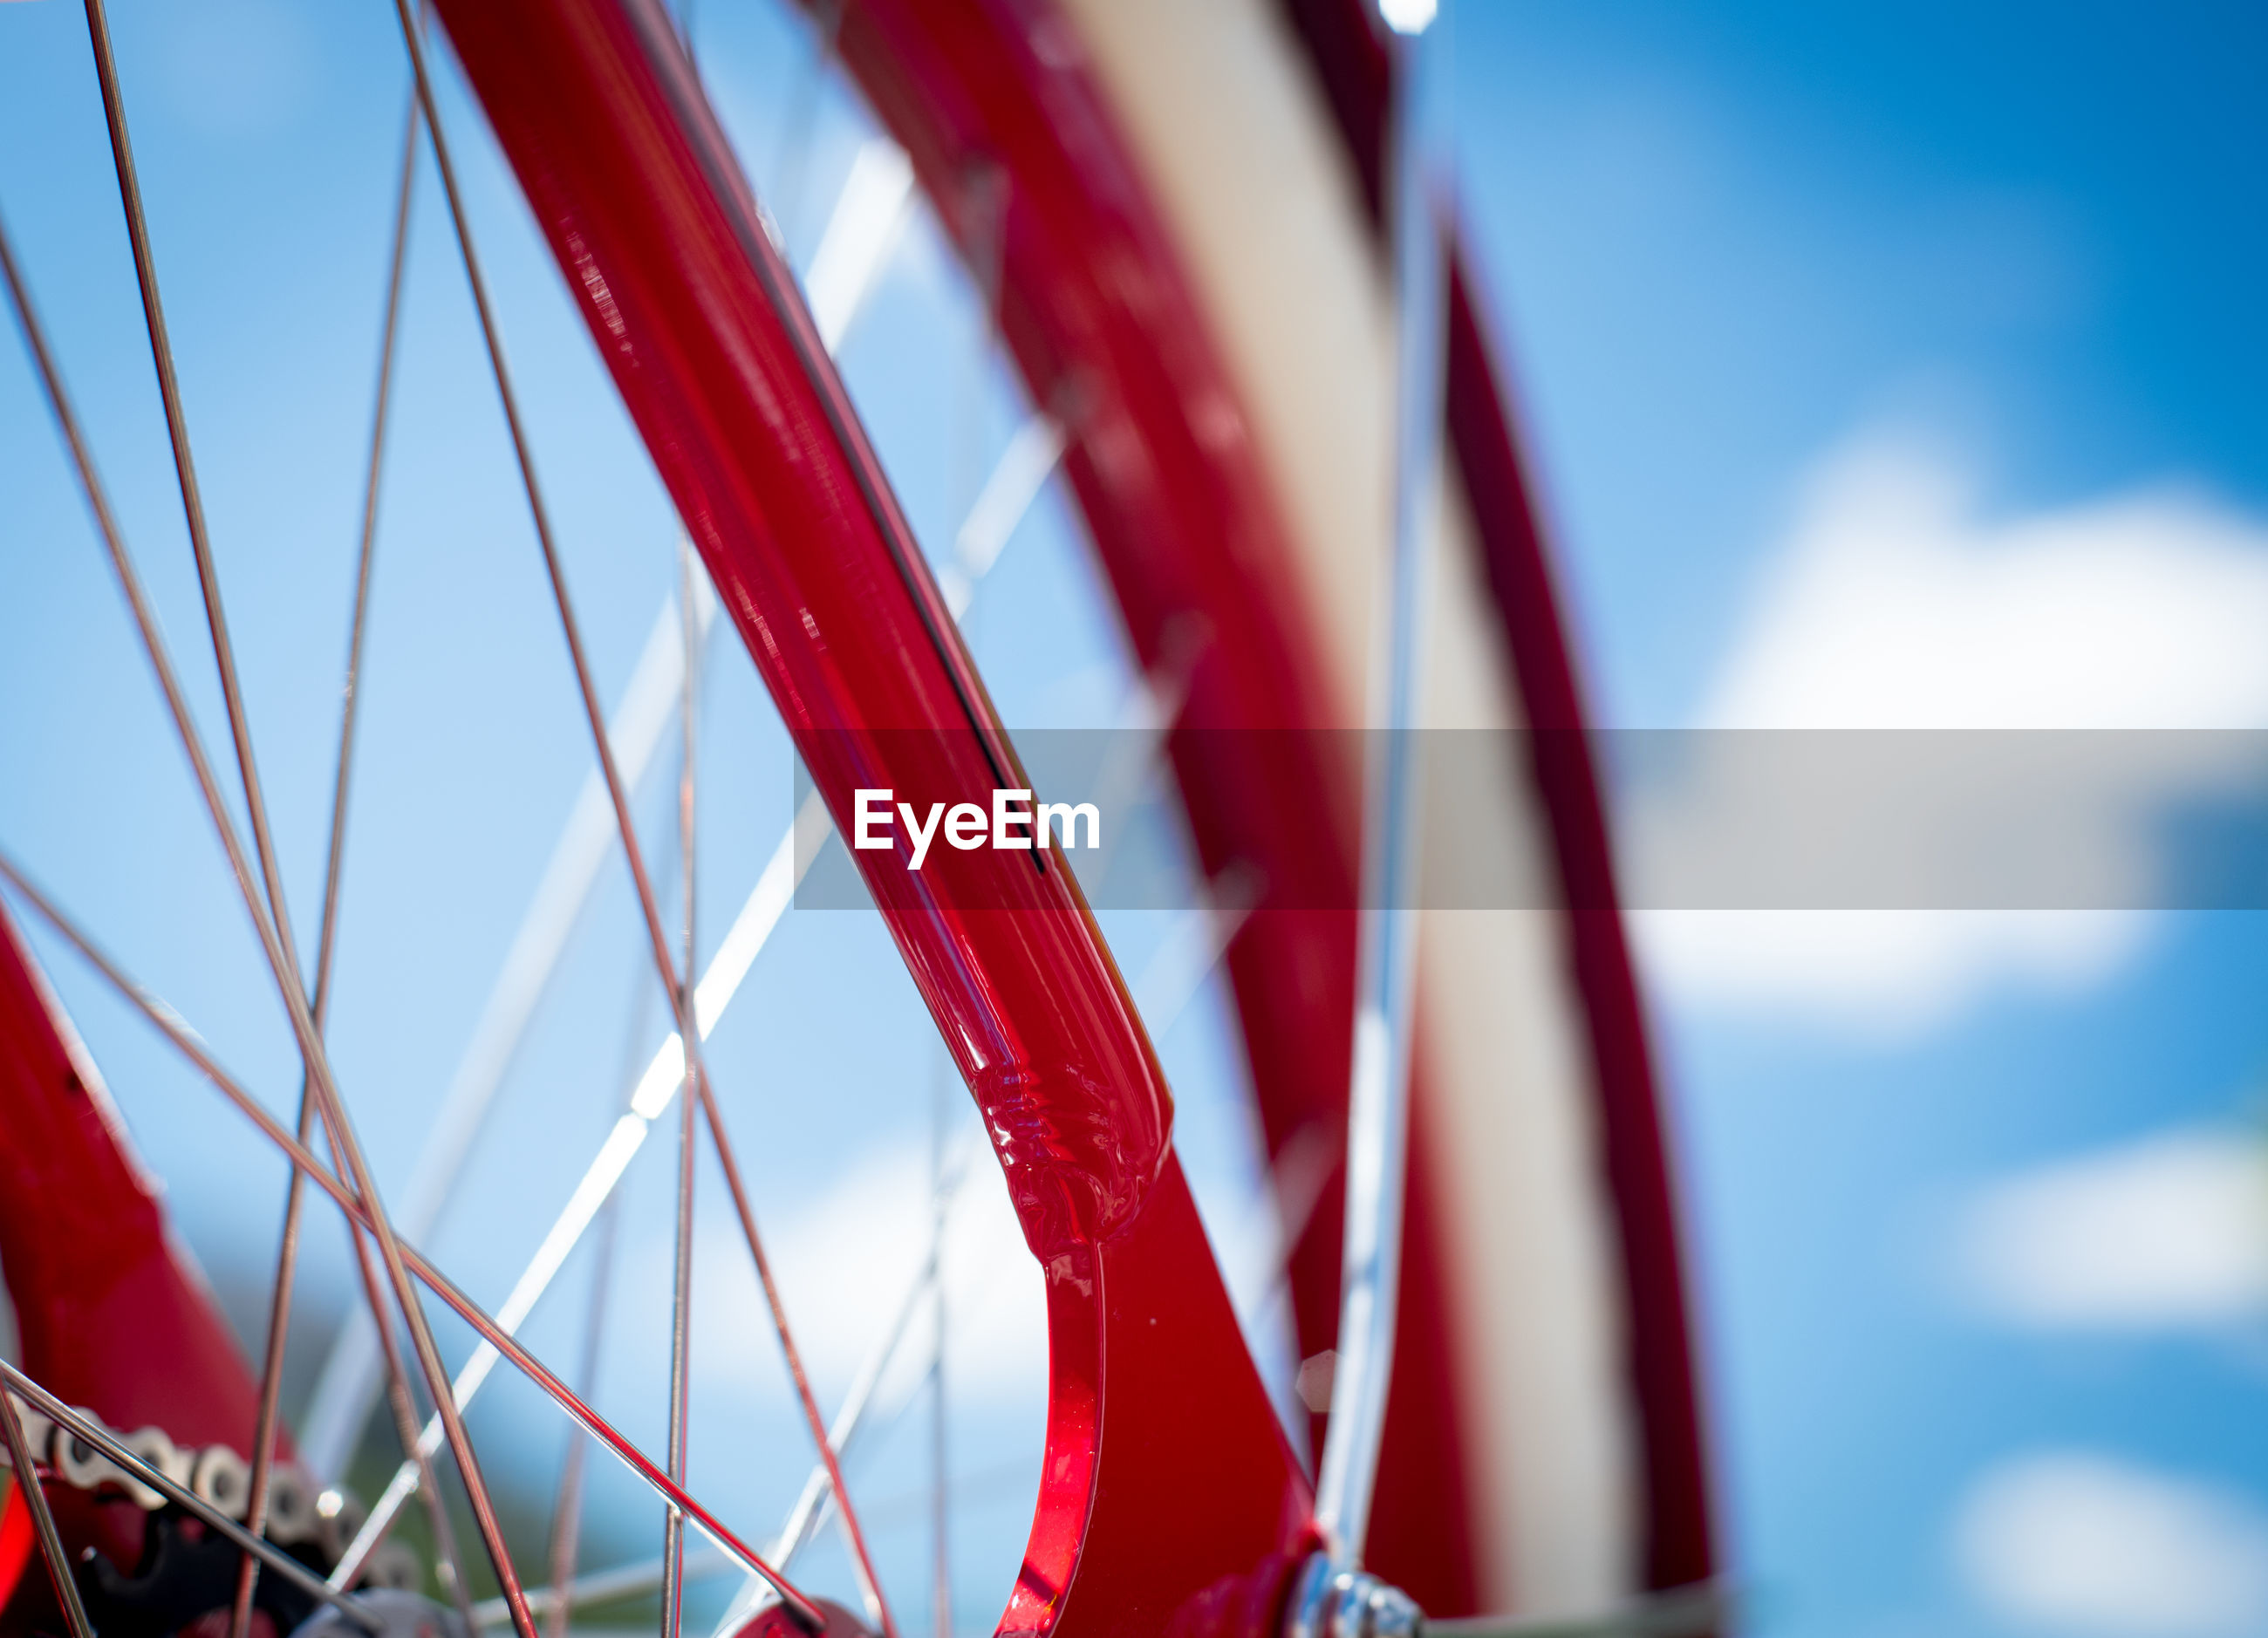 Low angle view of red bicycle wheel against sky